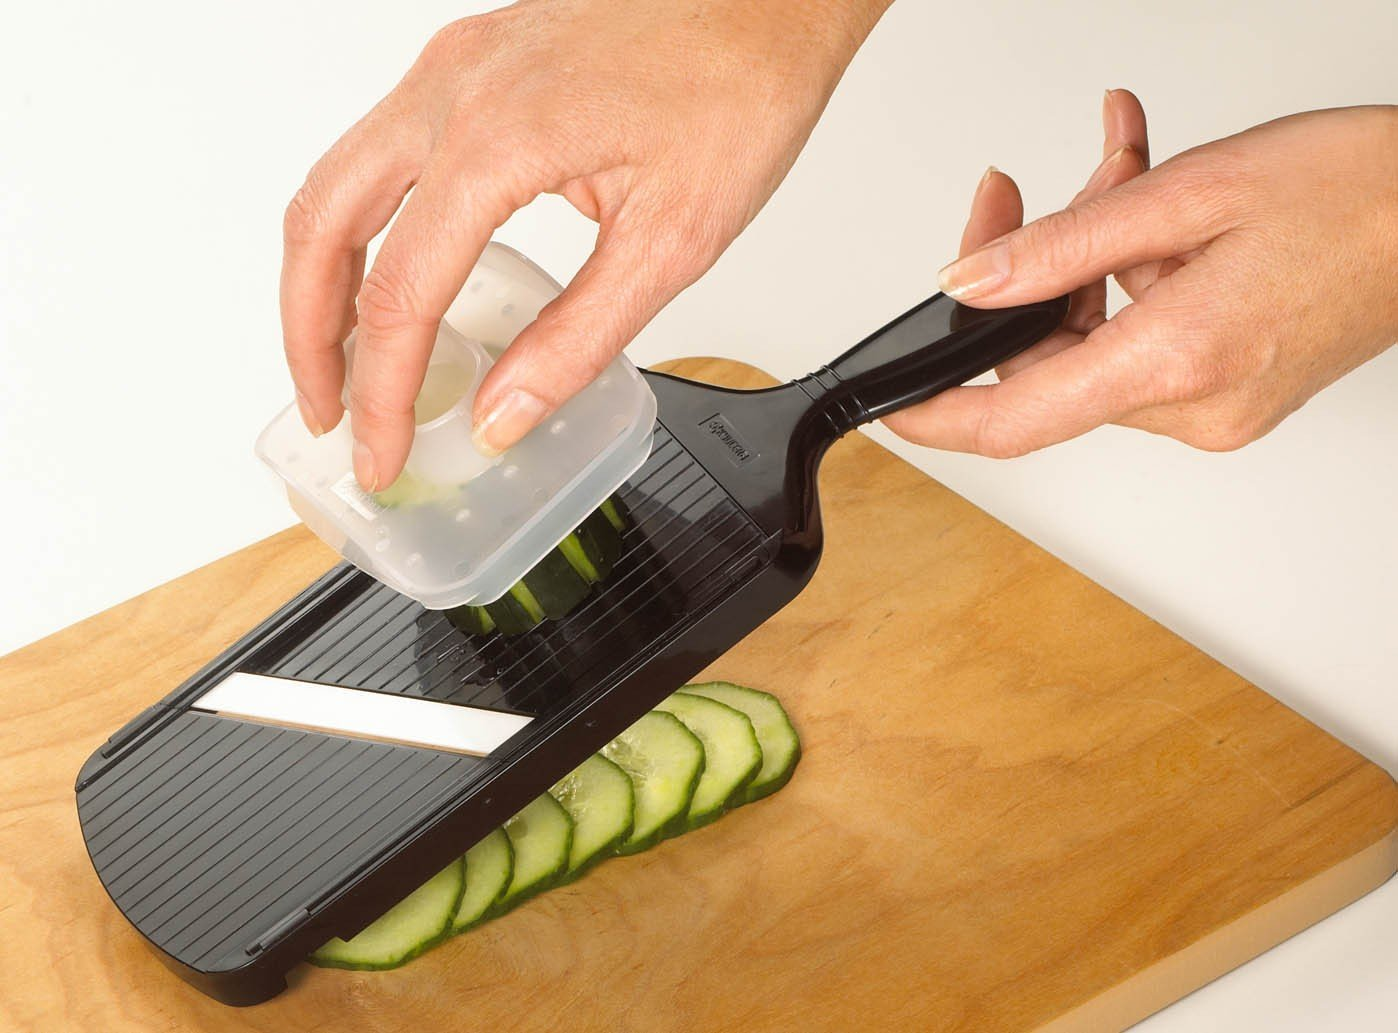 beautiful Mandolin Kitchen Appliance #1: Amazon.com: Kyocera Advanced Ceramic Adjustable Mandoline Vegetable Slicer  w/ Handguard-Black: Kyocera Knife: Kitchen u0026 Dining